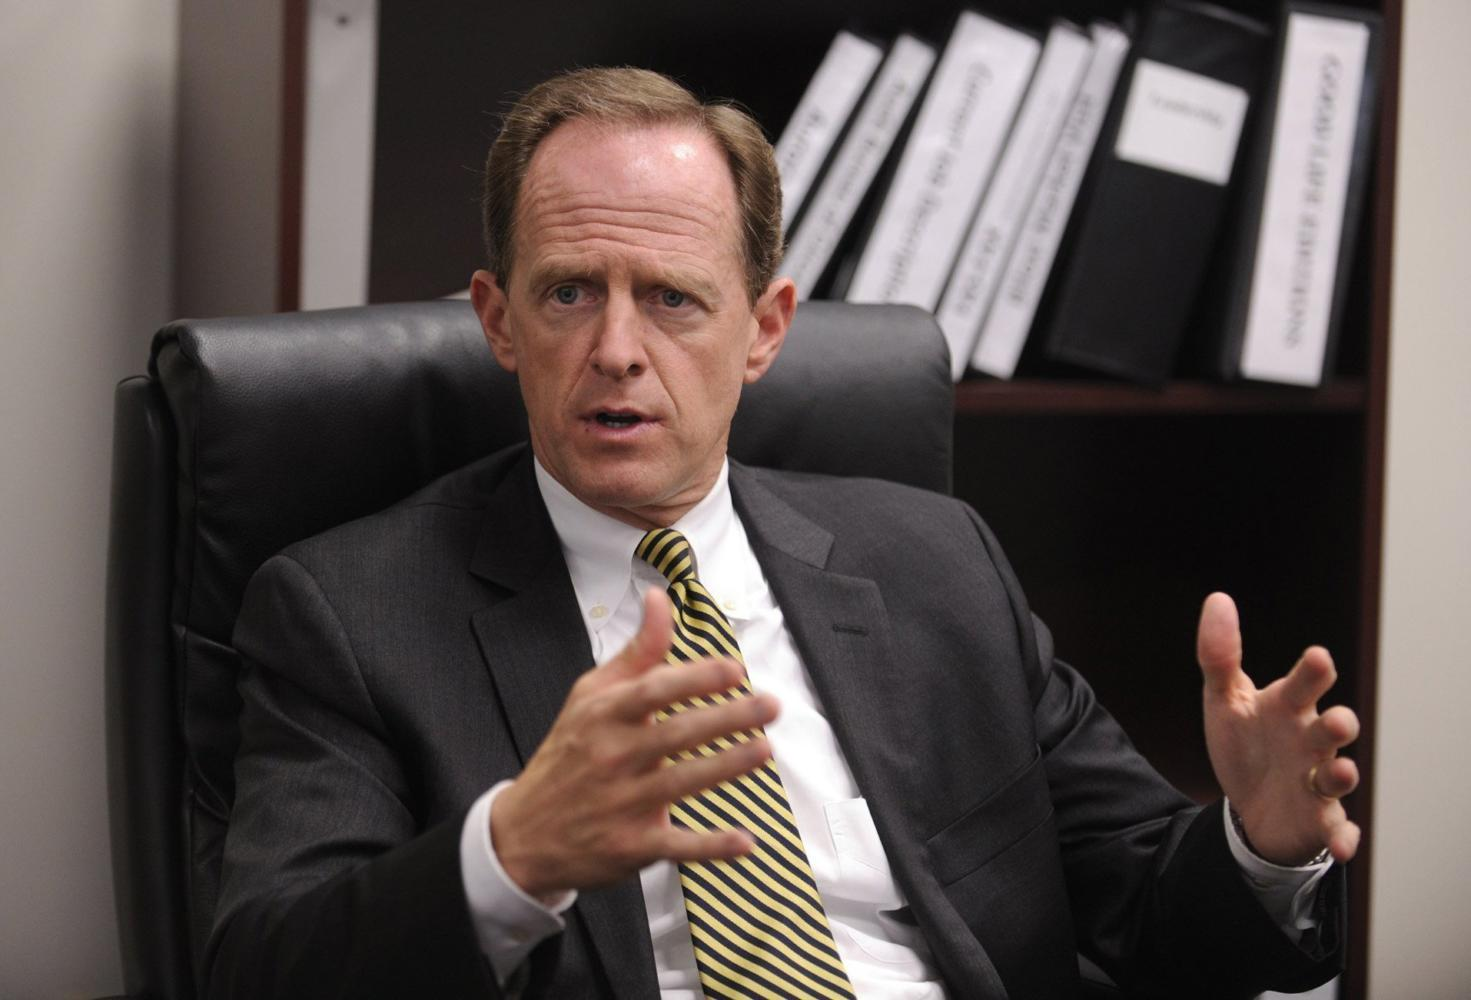 Sen. Pat Toomey, R-Pa., added an amendment to the GOP tax bill which would have exempted colleges that don't receive federal funding. The amendment didn't pass. (Nabil K. Mark/Centre Daily Times/MCT)